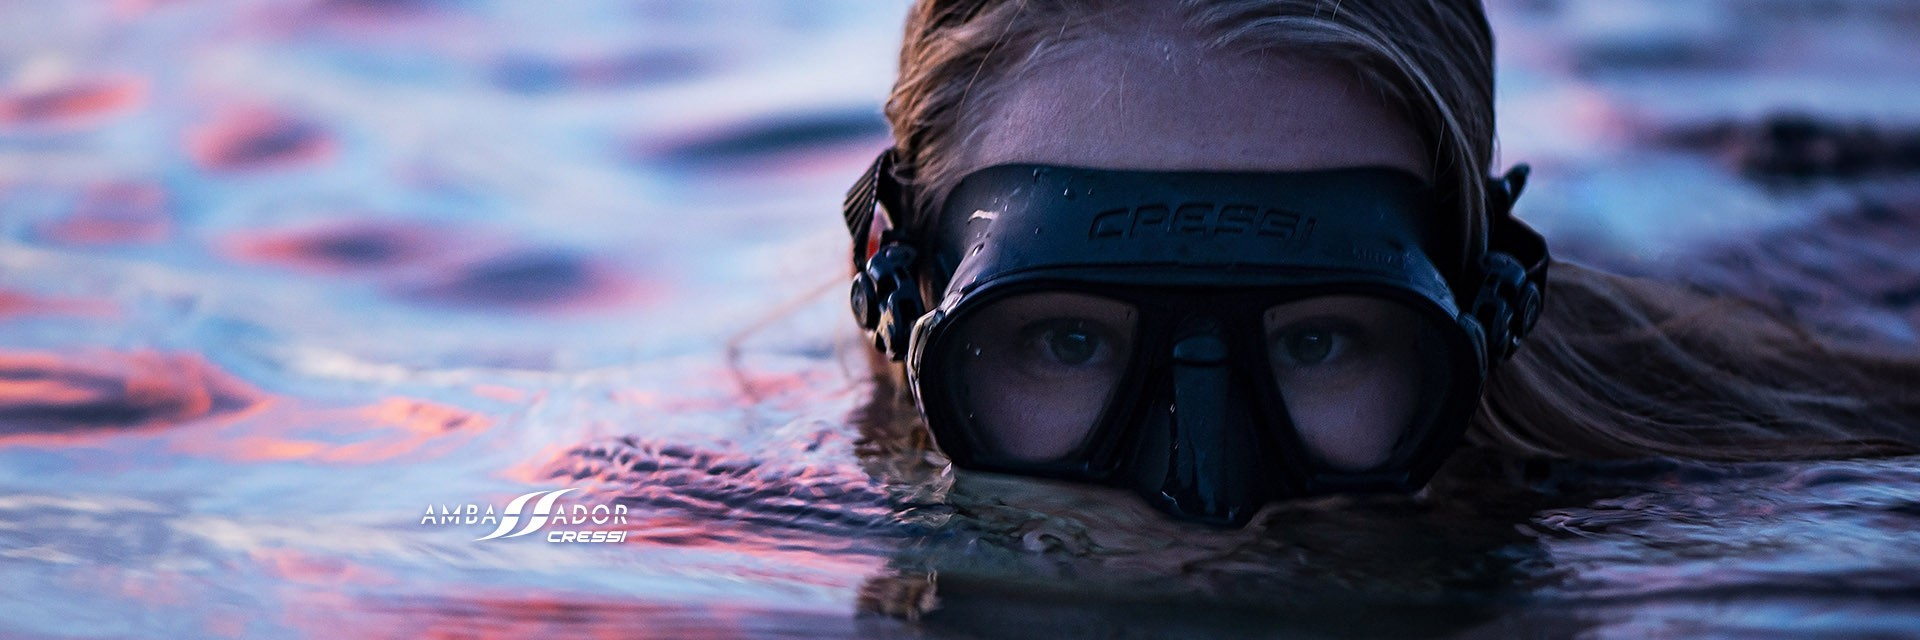 free diving record woman | apnea freediving | freediving equipment | freediving wetsuit |freediving